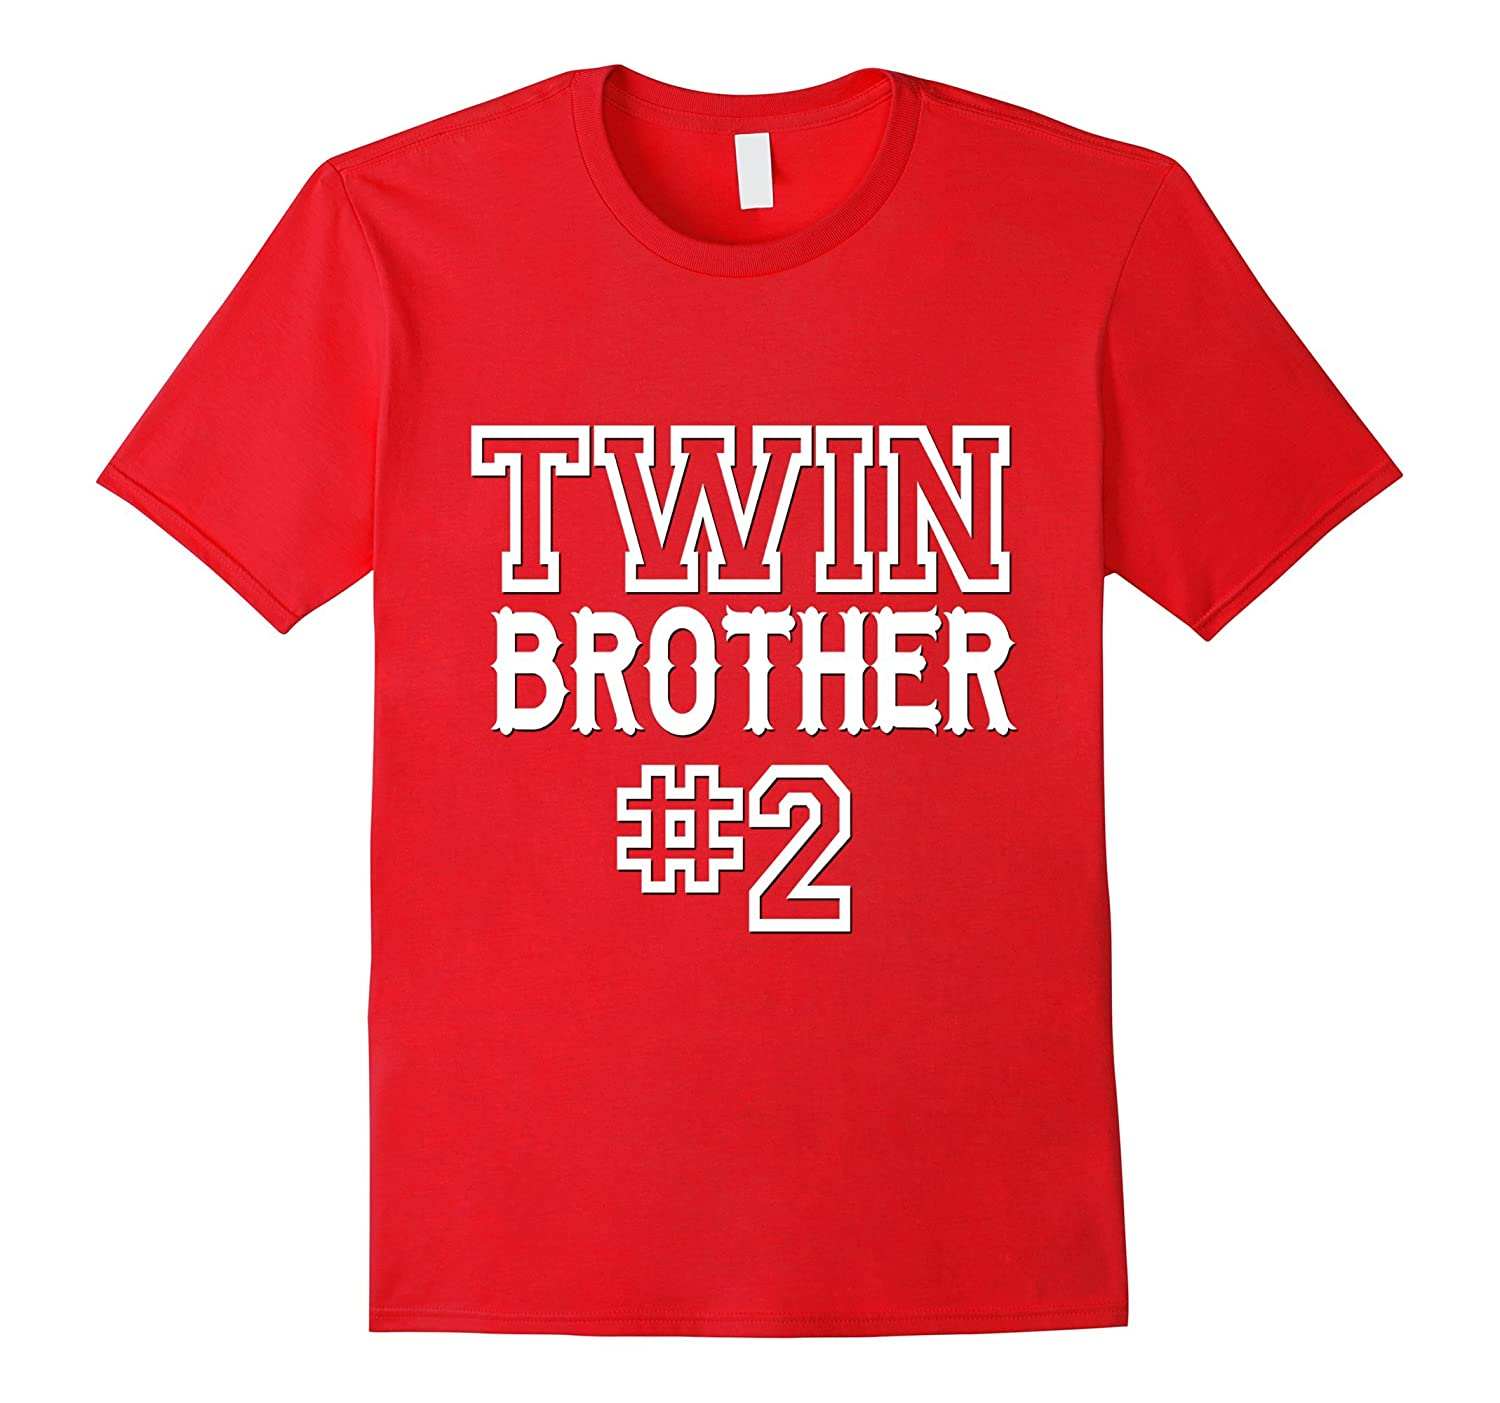 Twin Brother 2 Shirt Matching Family Kids Son Boys Gift-CD